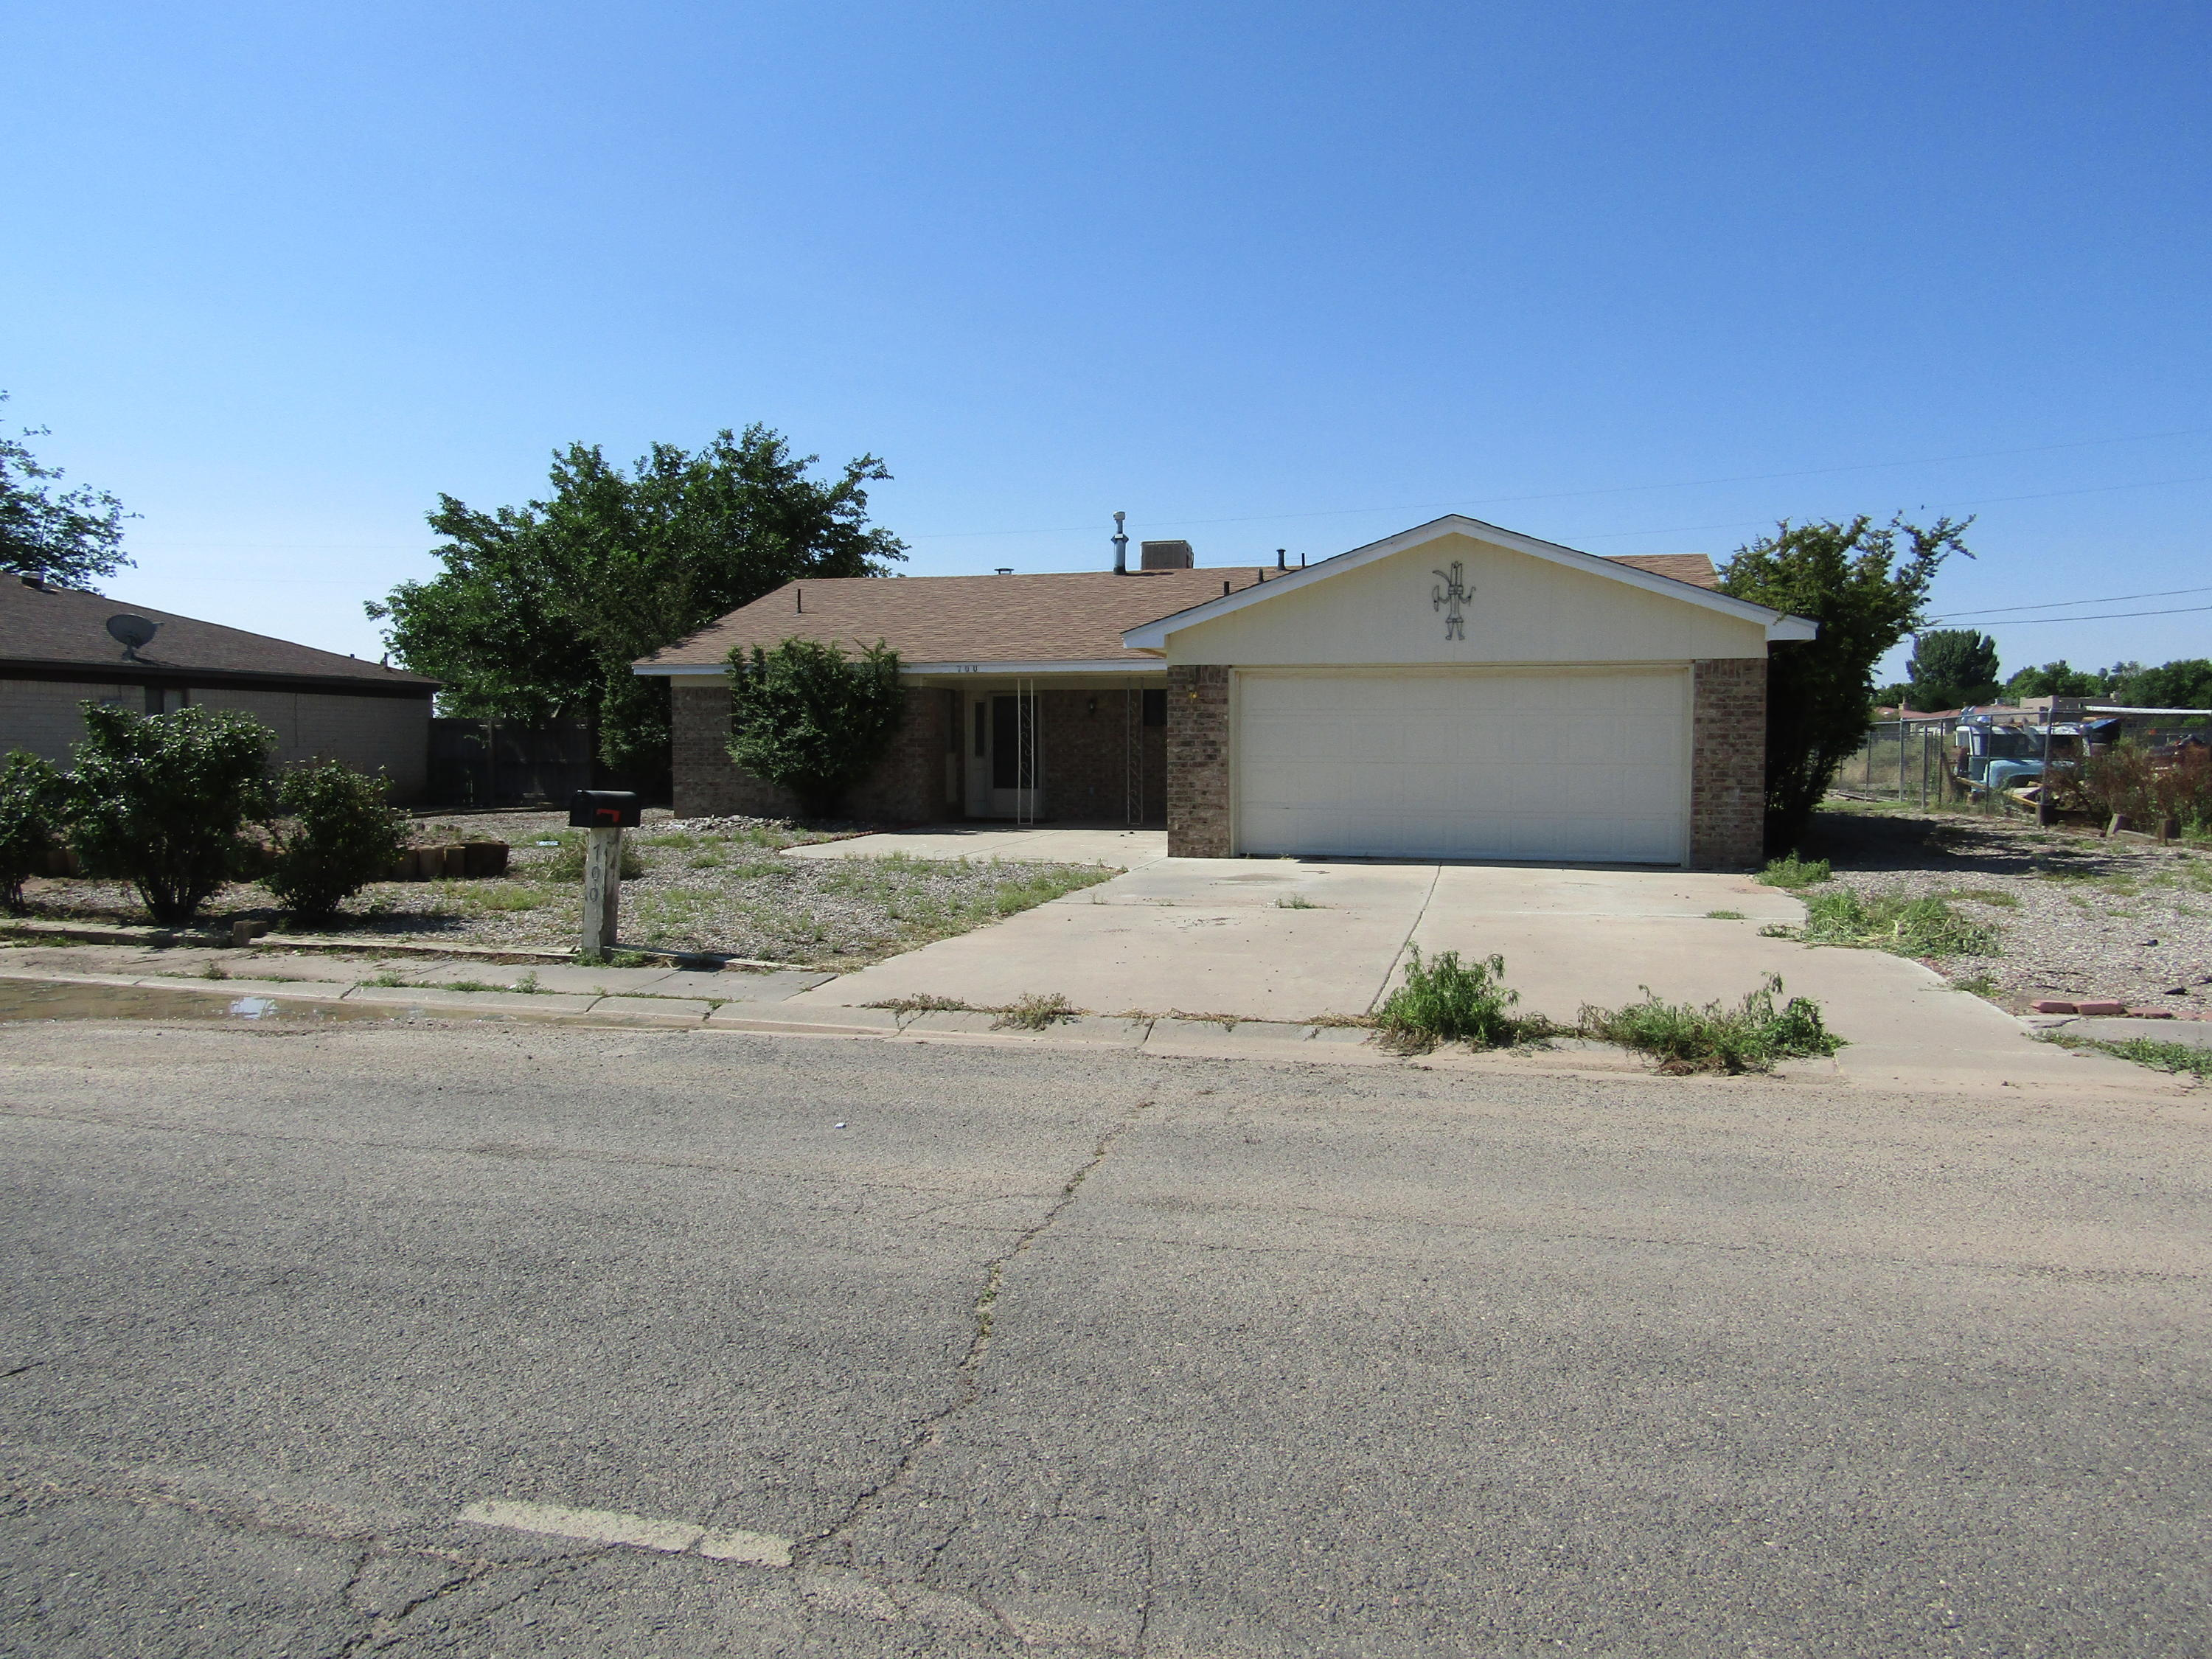 Adorable 3 bedroom home close to NM Tech. 2 full bathrooms, large fenced backyard, front yard landscaped, carpet and roof installed summer 2020, open kitchen, double closets.